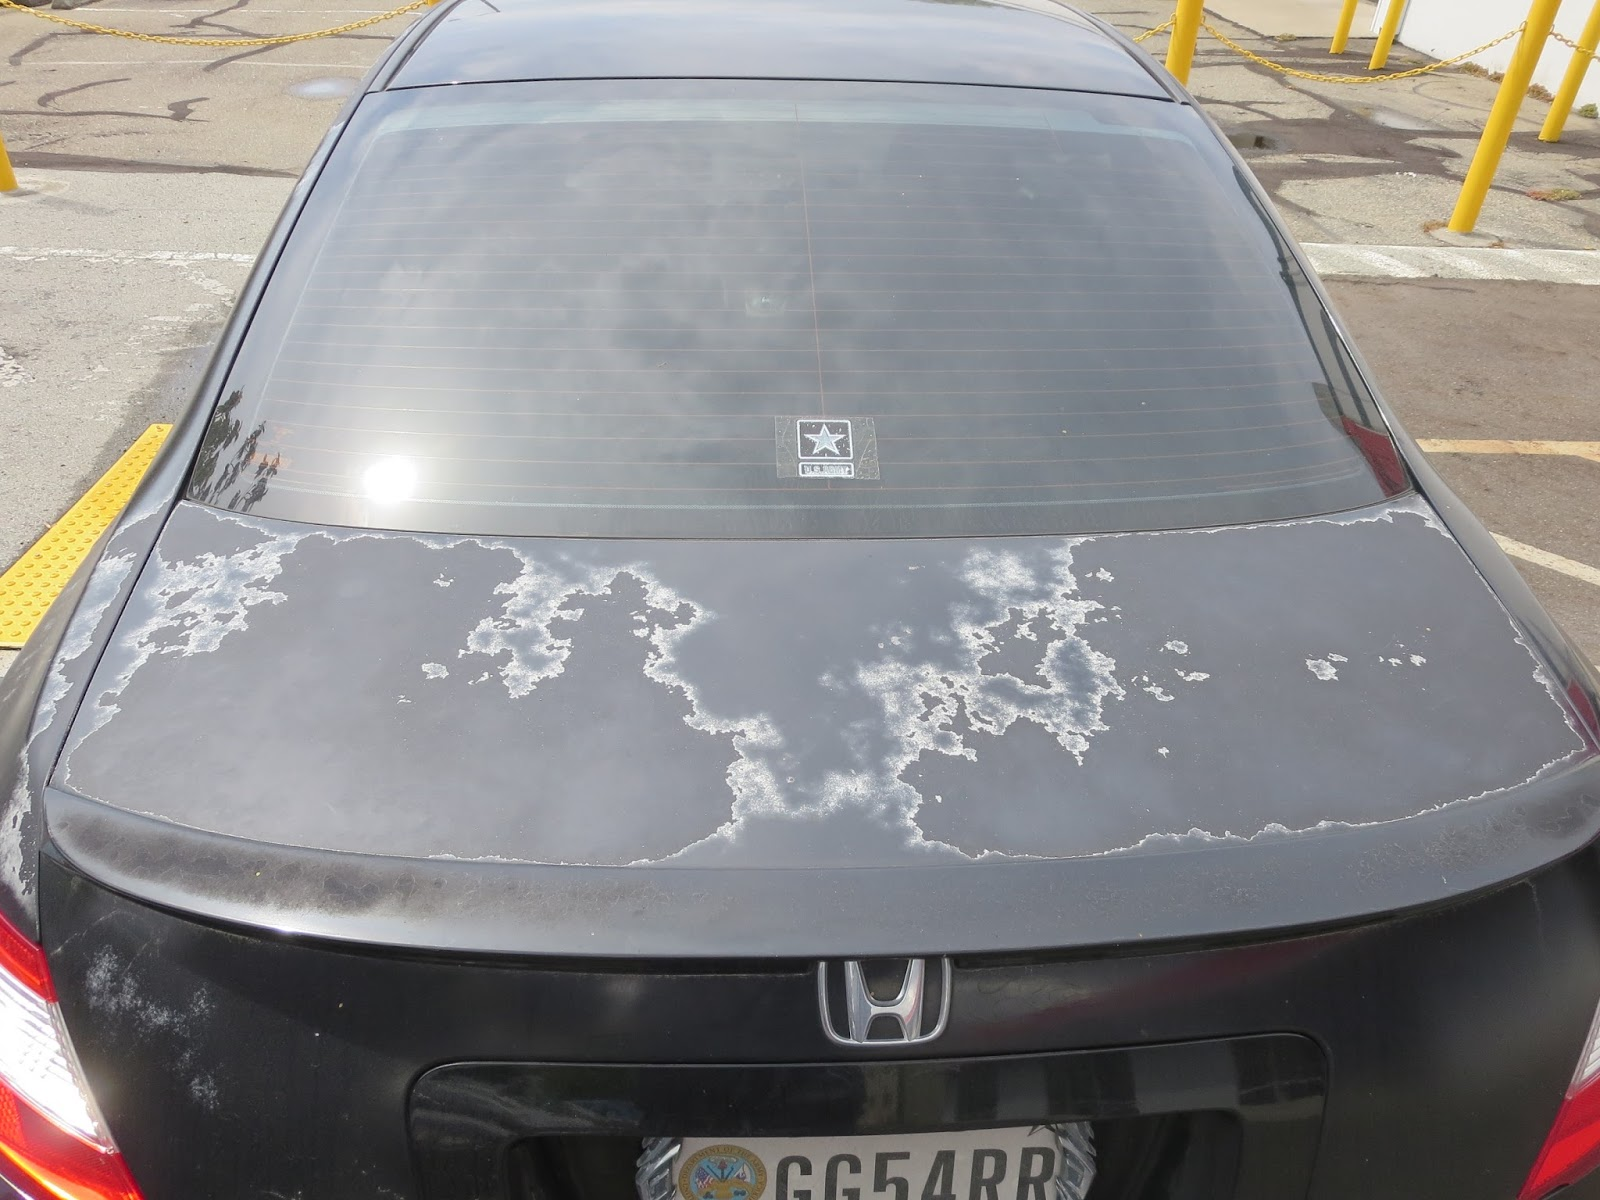 Car Paint Bubbling And Peeling Repair